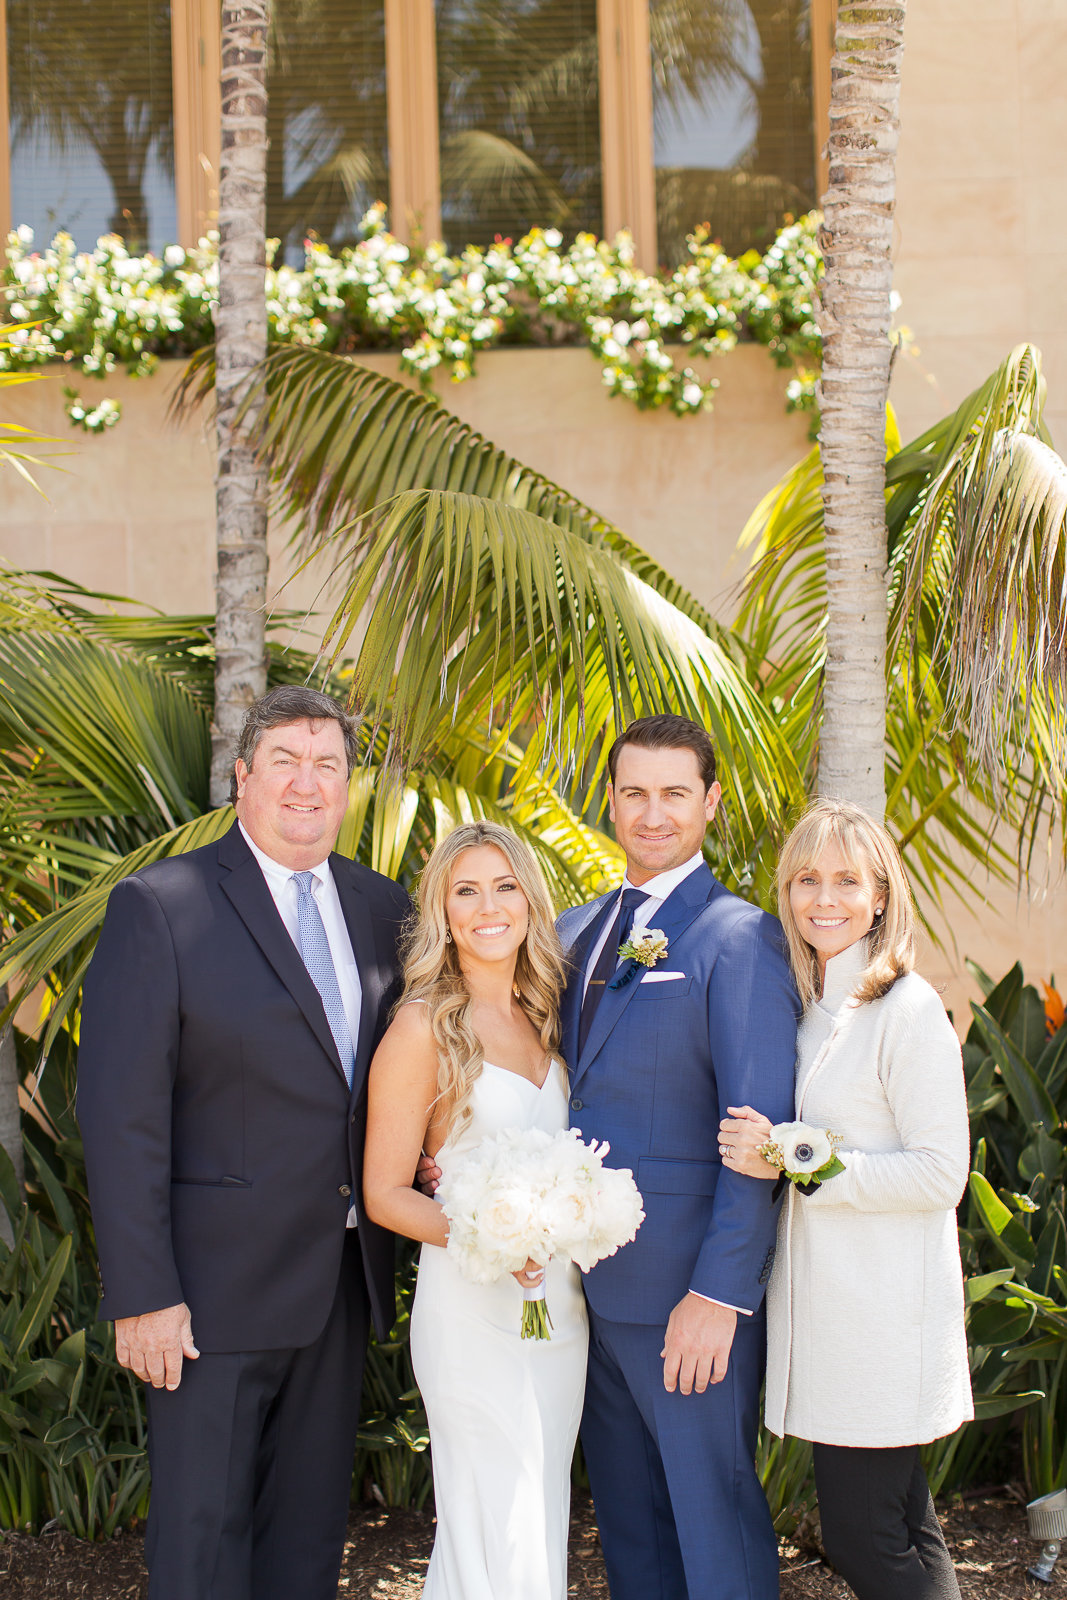 Newport Beach Caliornia Destination Wedding Theresa Bridget Photography-28